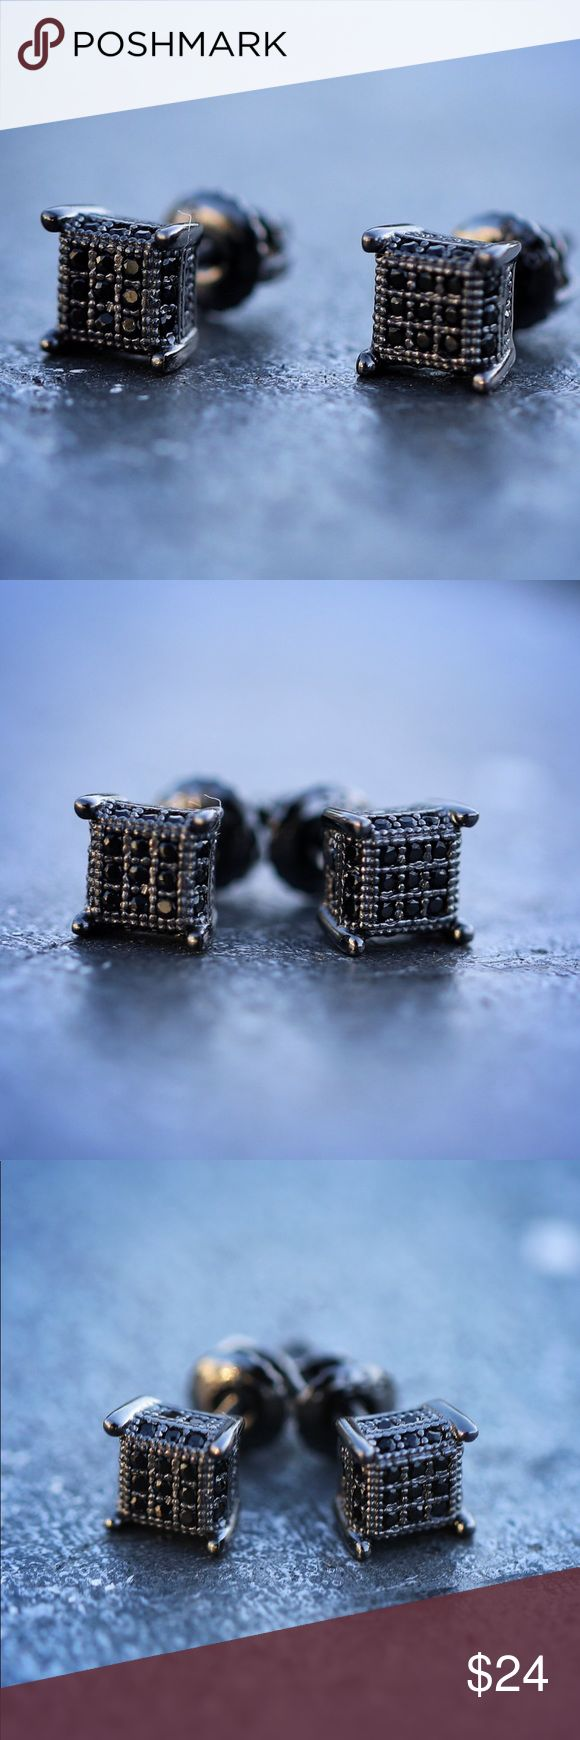 Men's Hip Hop Black Square Hip Hop Stud Earrings Men's Hip Hop Black Diamond Square Hip Hop Stud Earrings  Black lab simulated diamonds.  Black plated over 925 sterling silver. Stud size is 7mm (small size) Screw on backs included for a secure fit. TSV Jewelers Accessories Jewelry